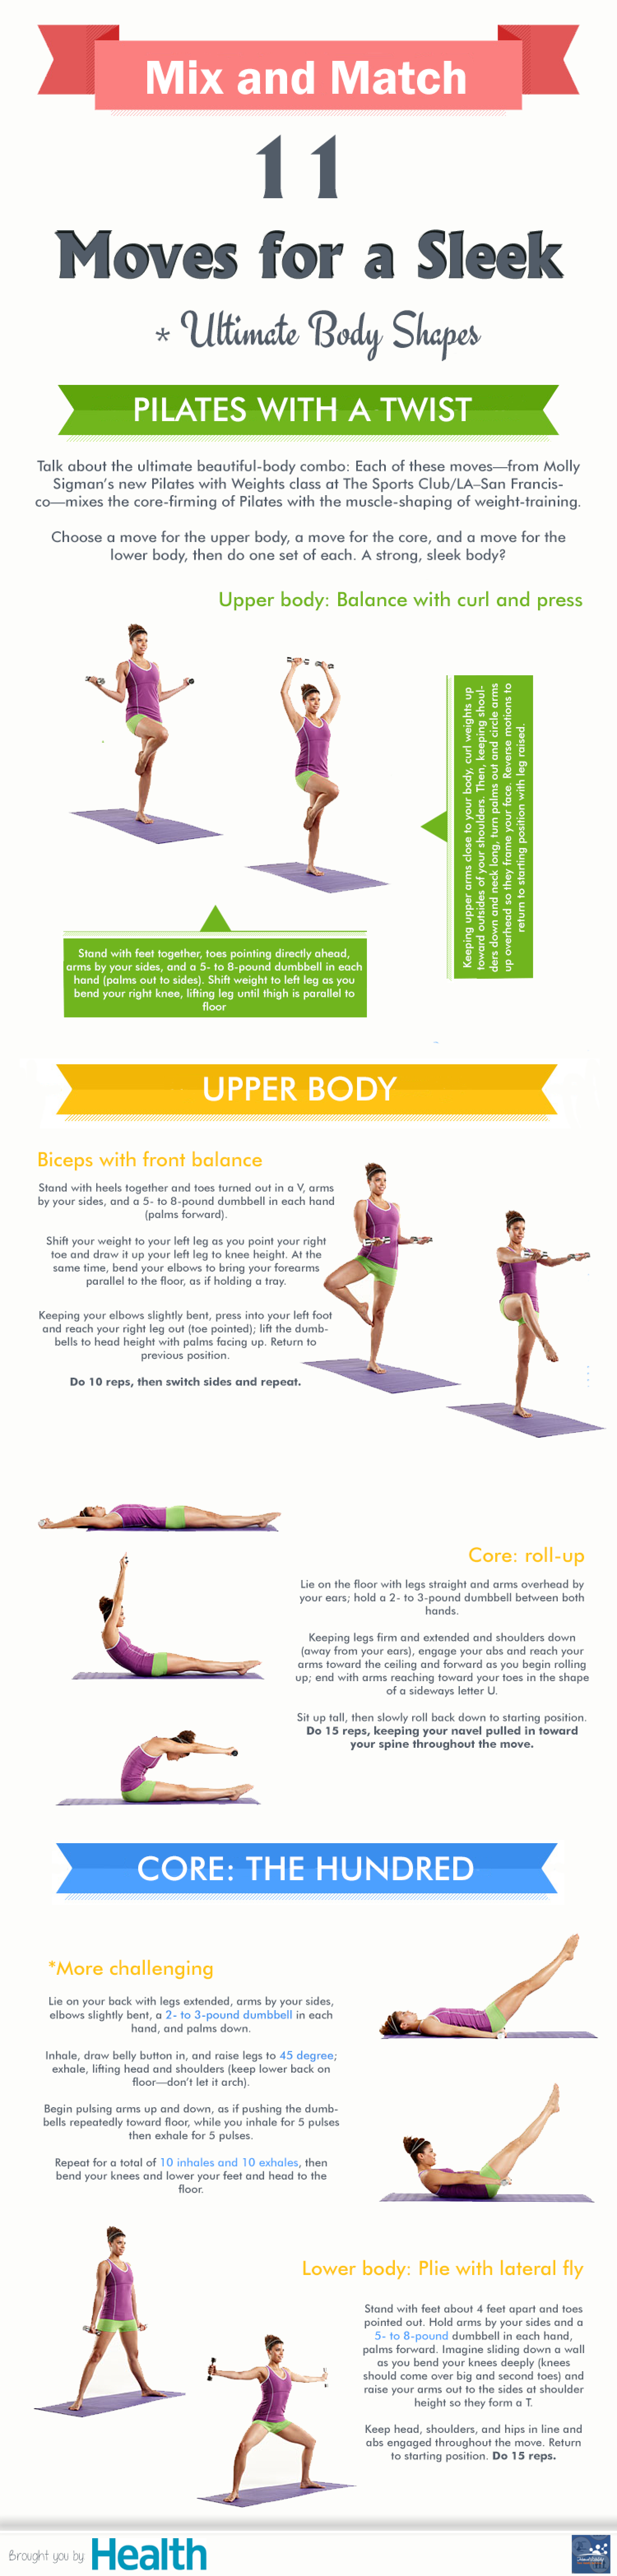 11 Moves for a Sleek Ultimate Body Shapes Infographic